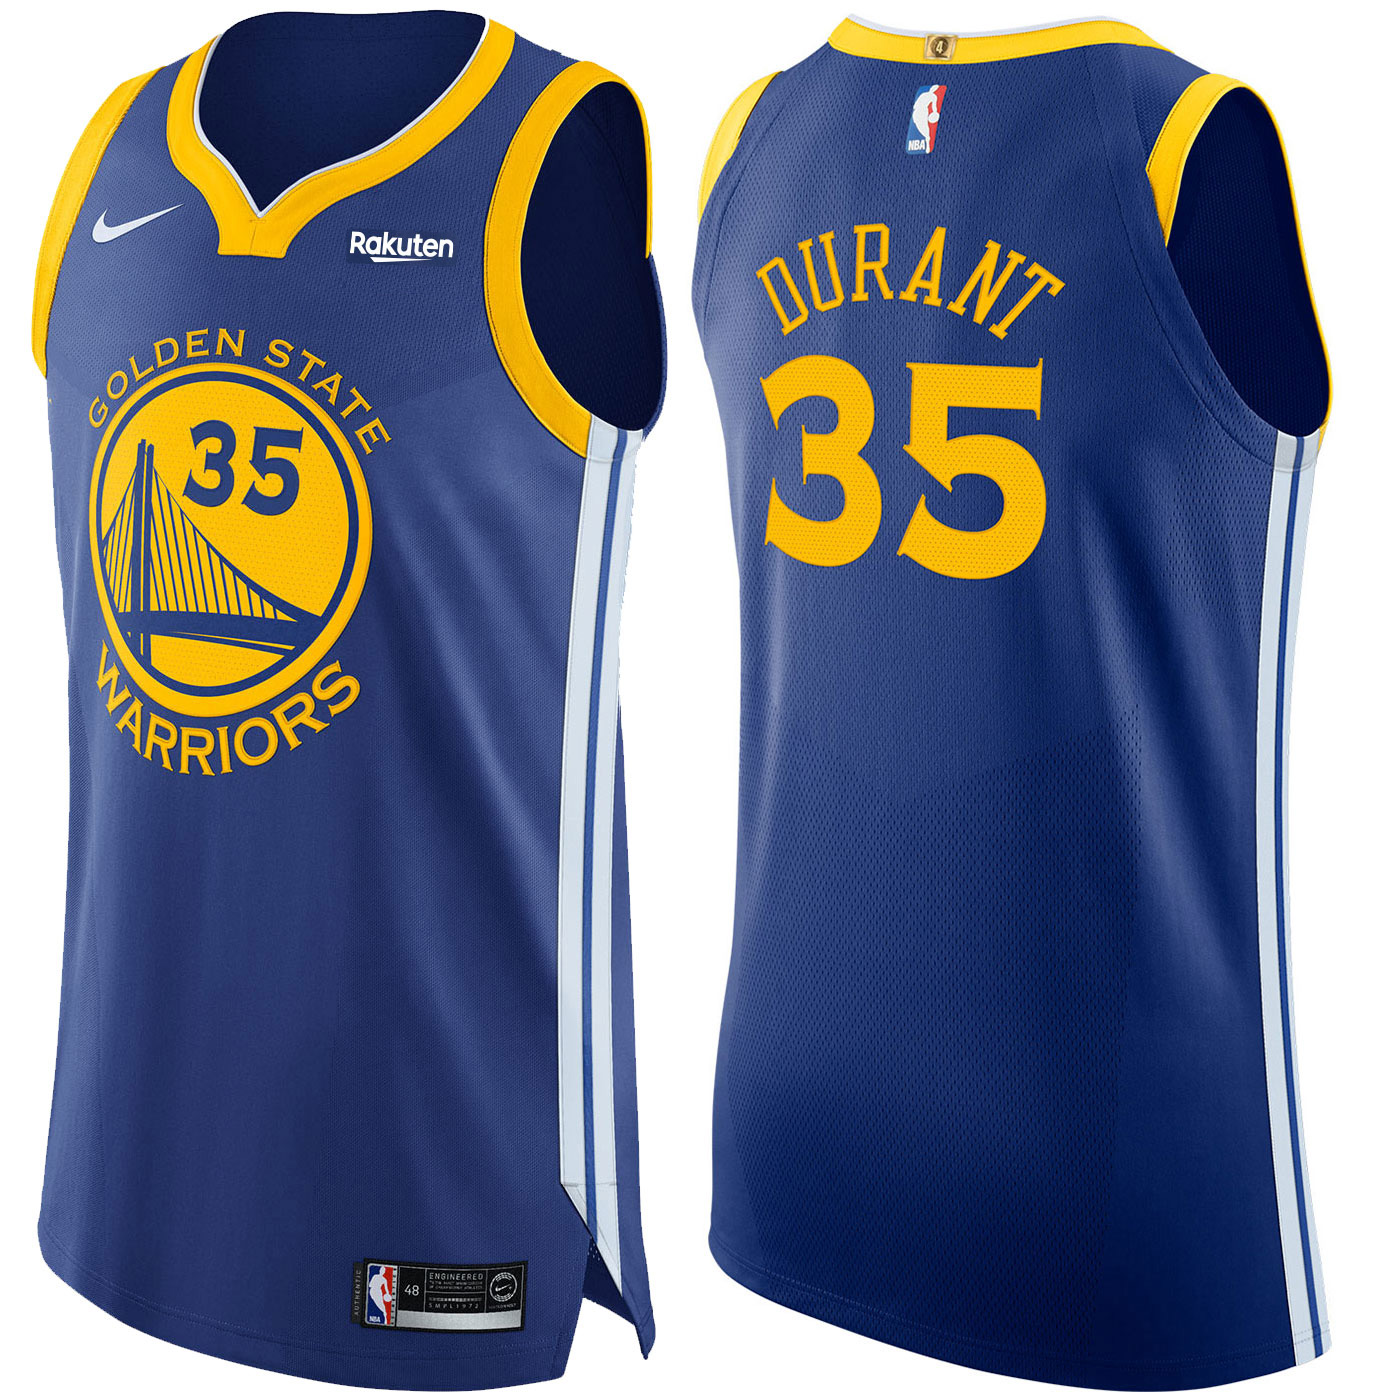 f8ea6e7e2 Product details of Golden State Warriors Mens Kevin Durant #35 Authentic On  Court Icon Jersey